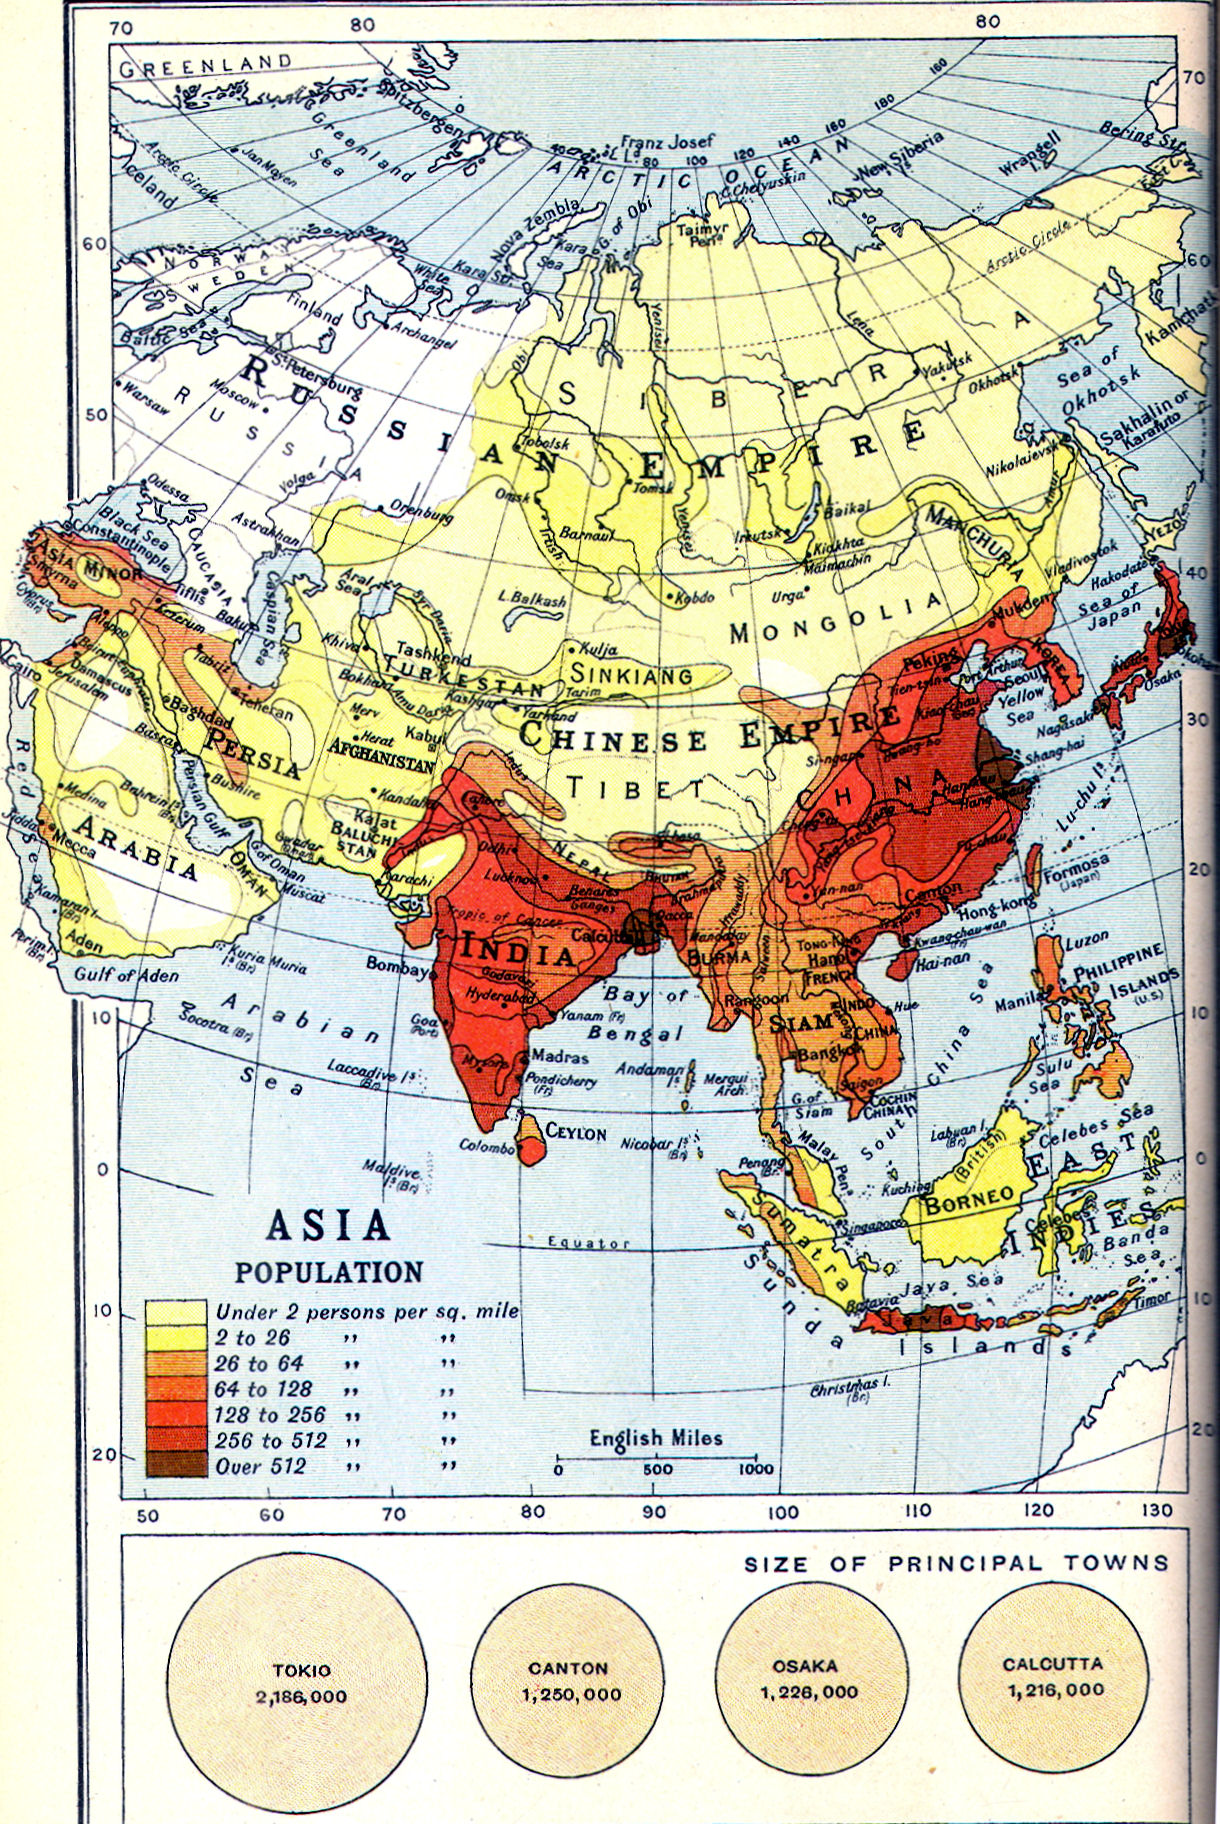 http://www.heritage-history.com/maps/lhasia/asia038.jpg